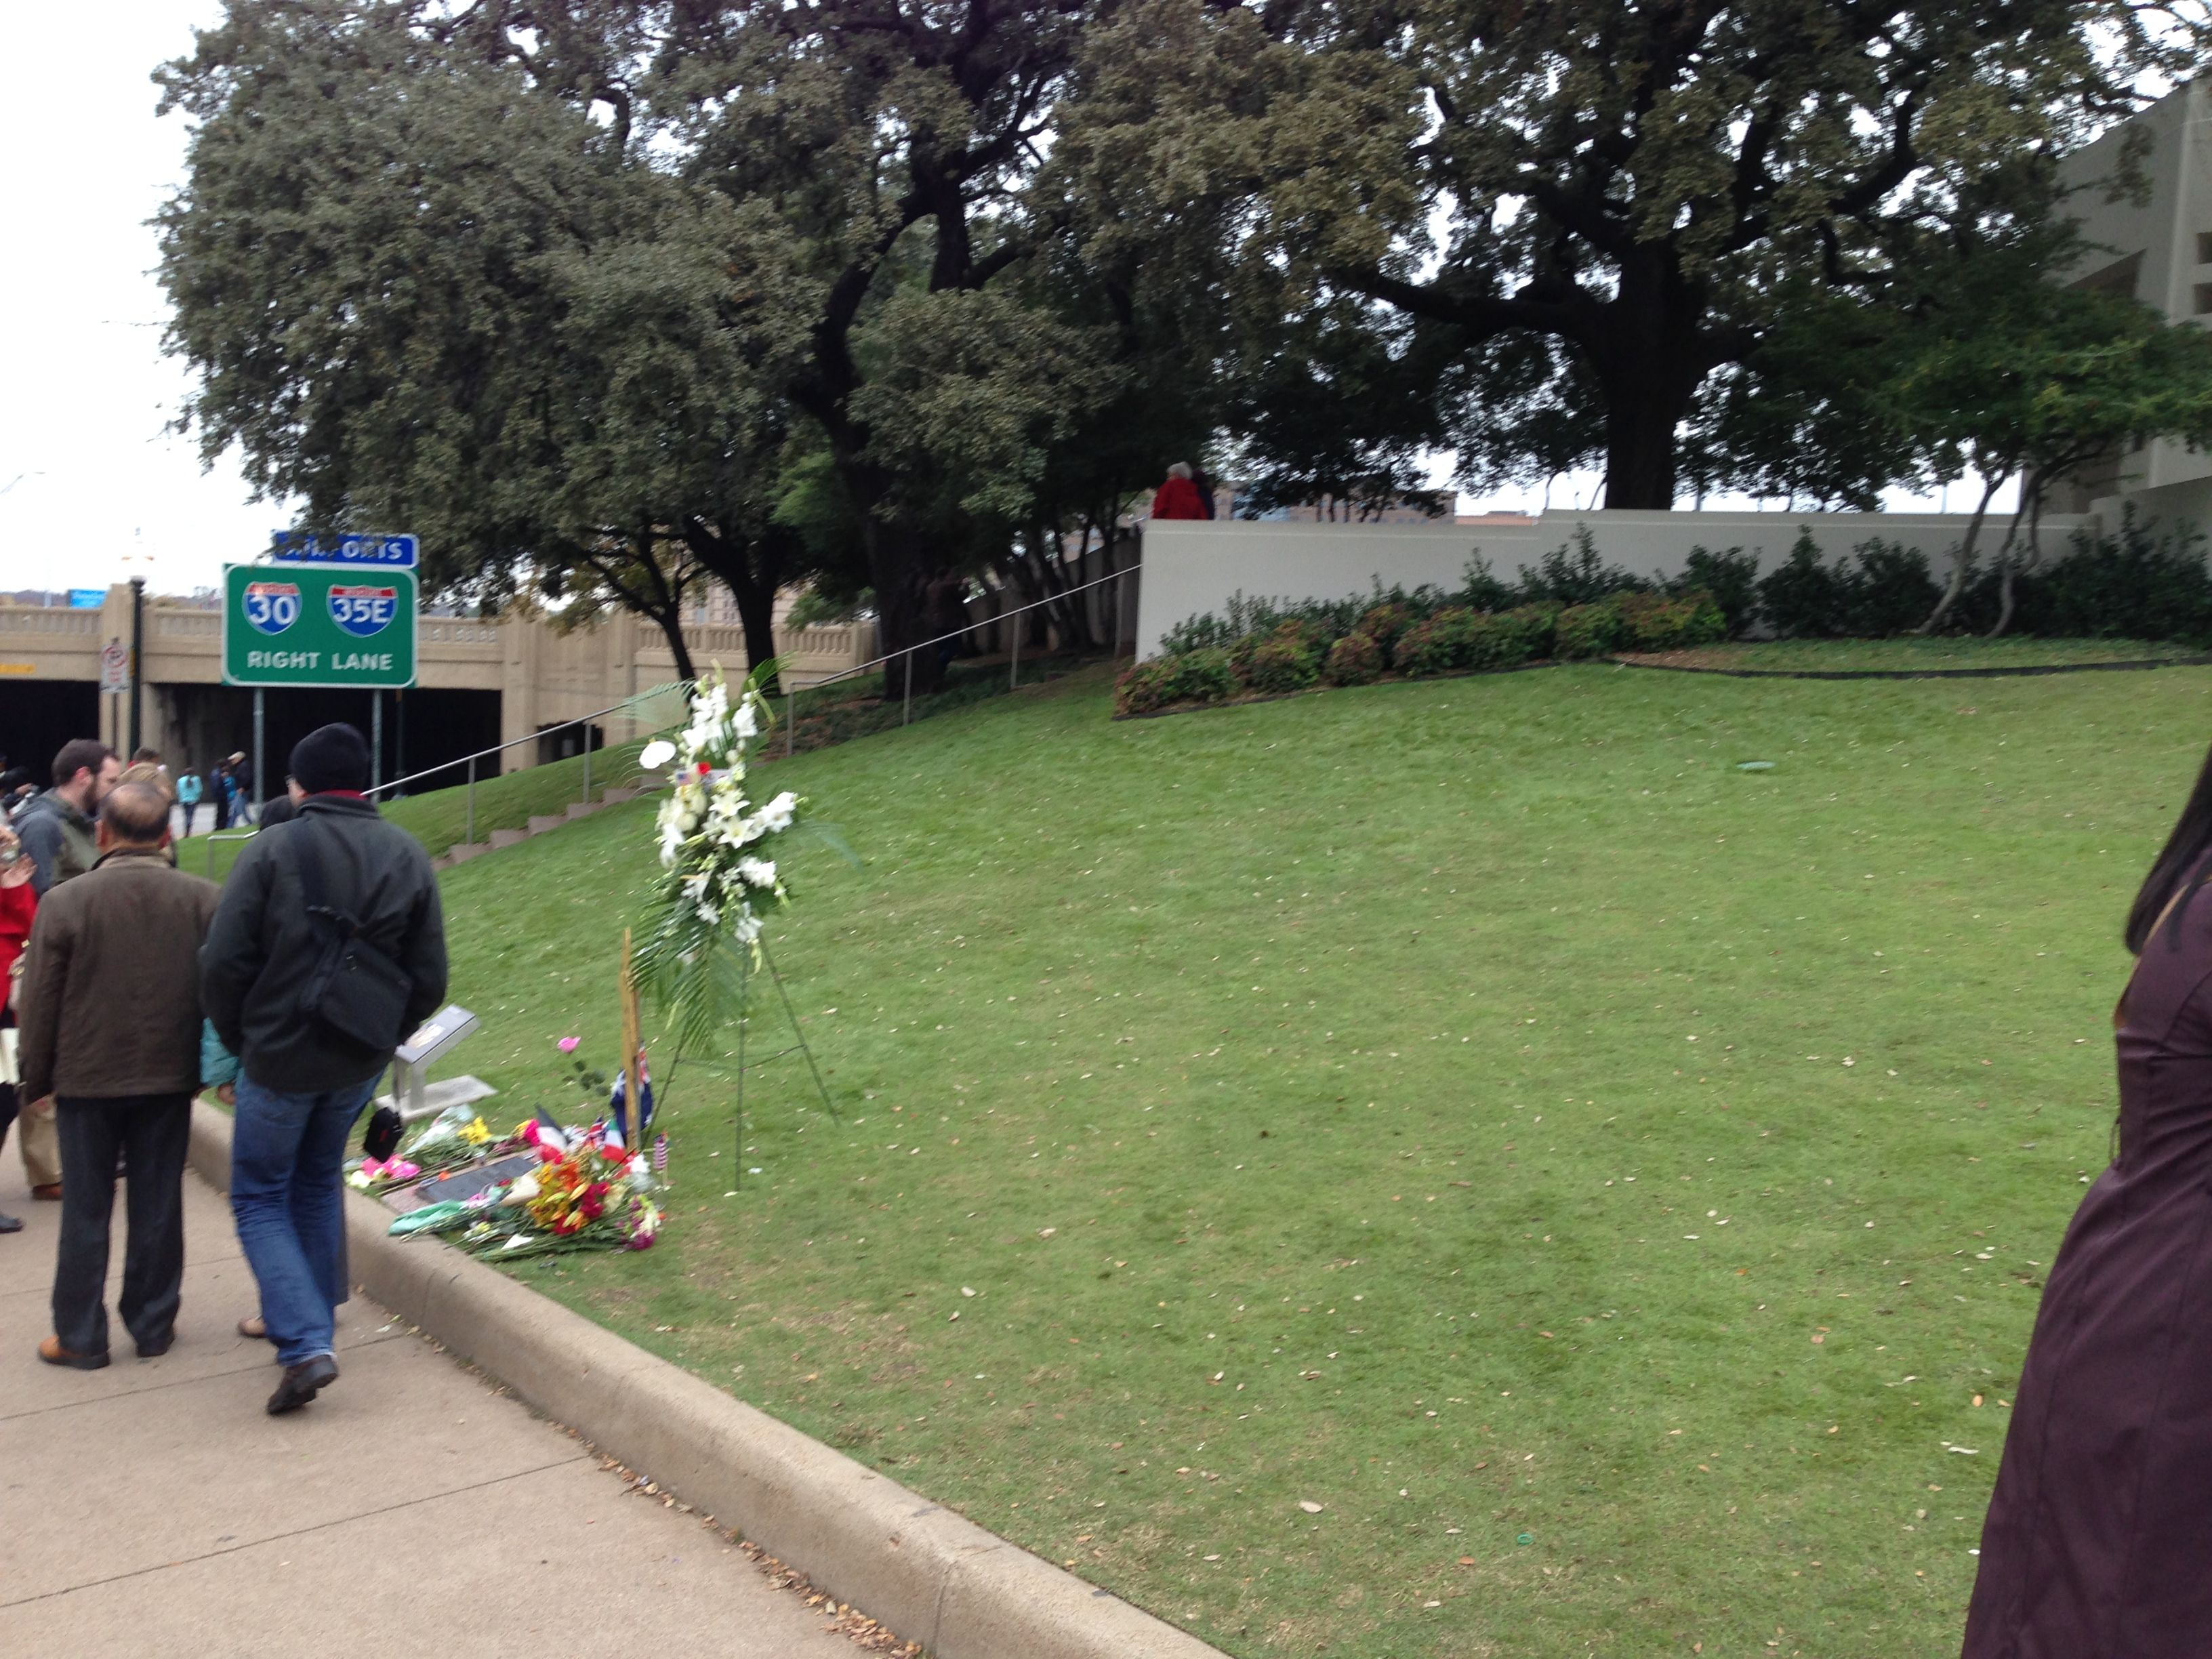 Dealey Plaza Grassy Knoll